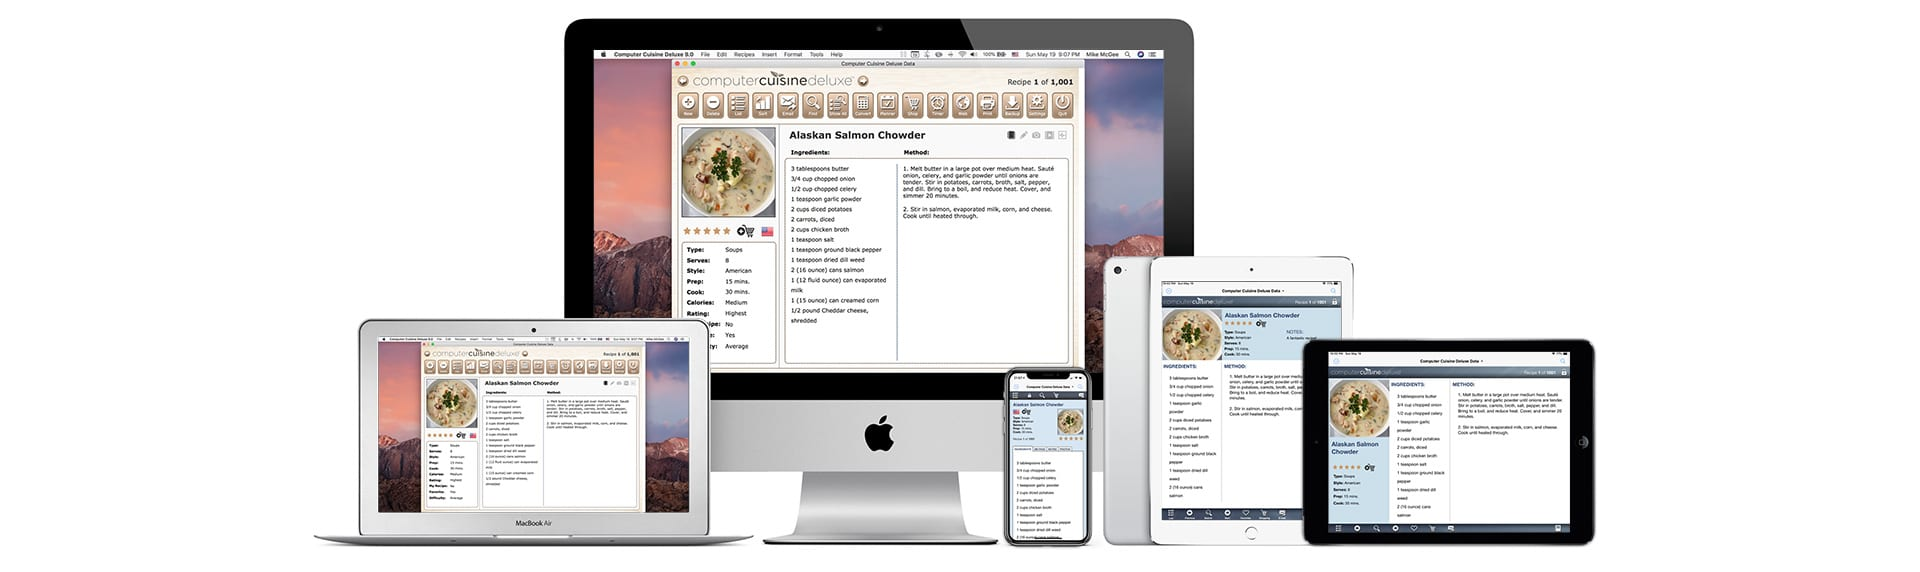 computer cuisine laptop mac recipe software version 9 all devices macOS iOS iPad iPhone Mac iMac Laptop MacBook Pro iPhone X